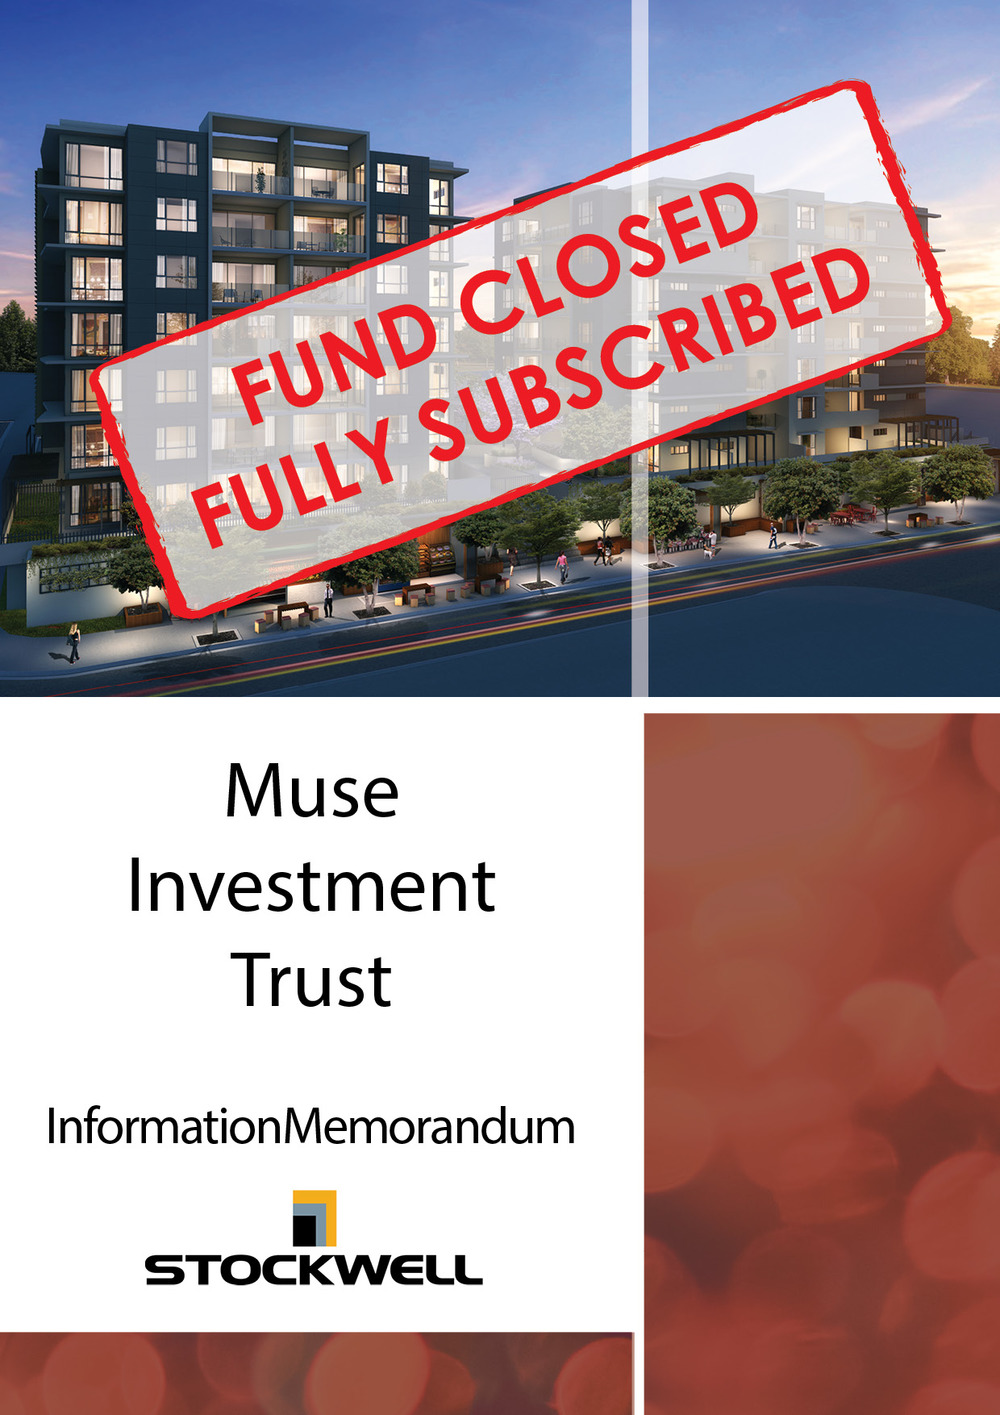 Muse Investment Trust